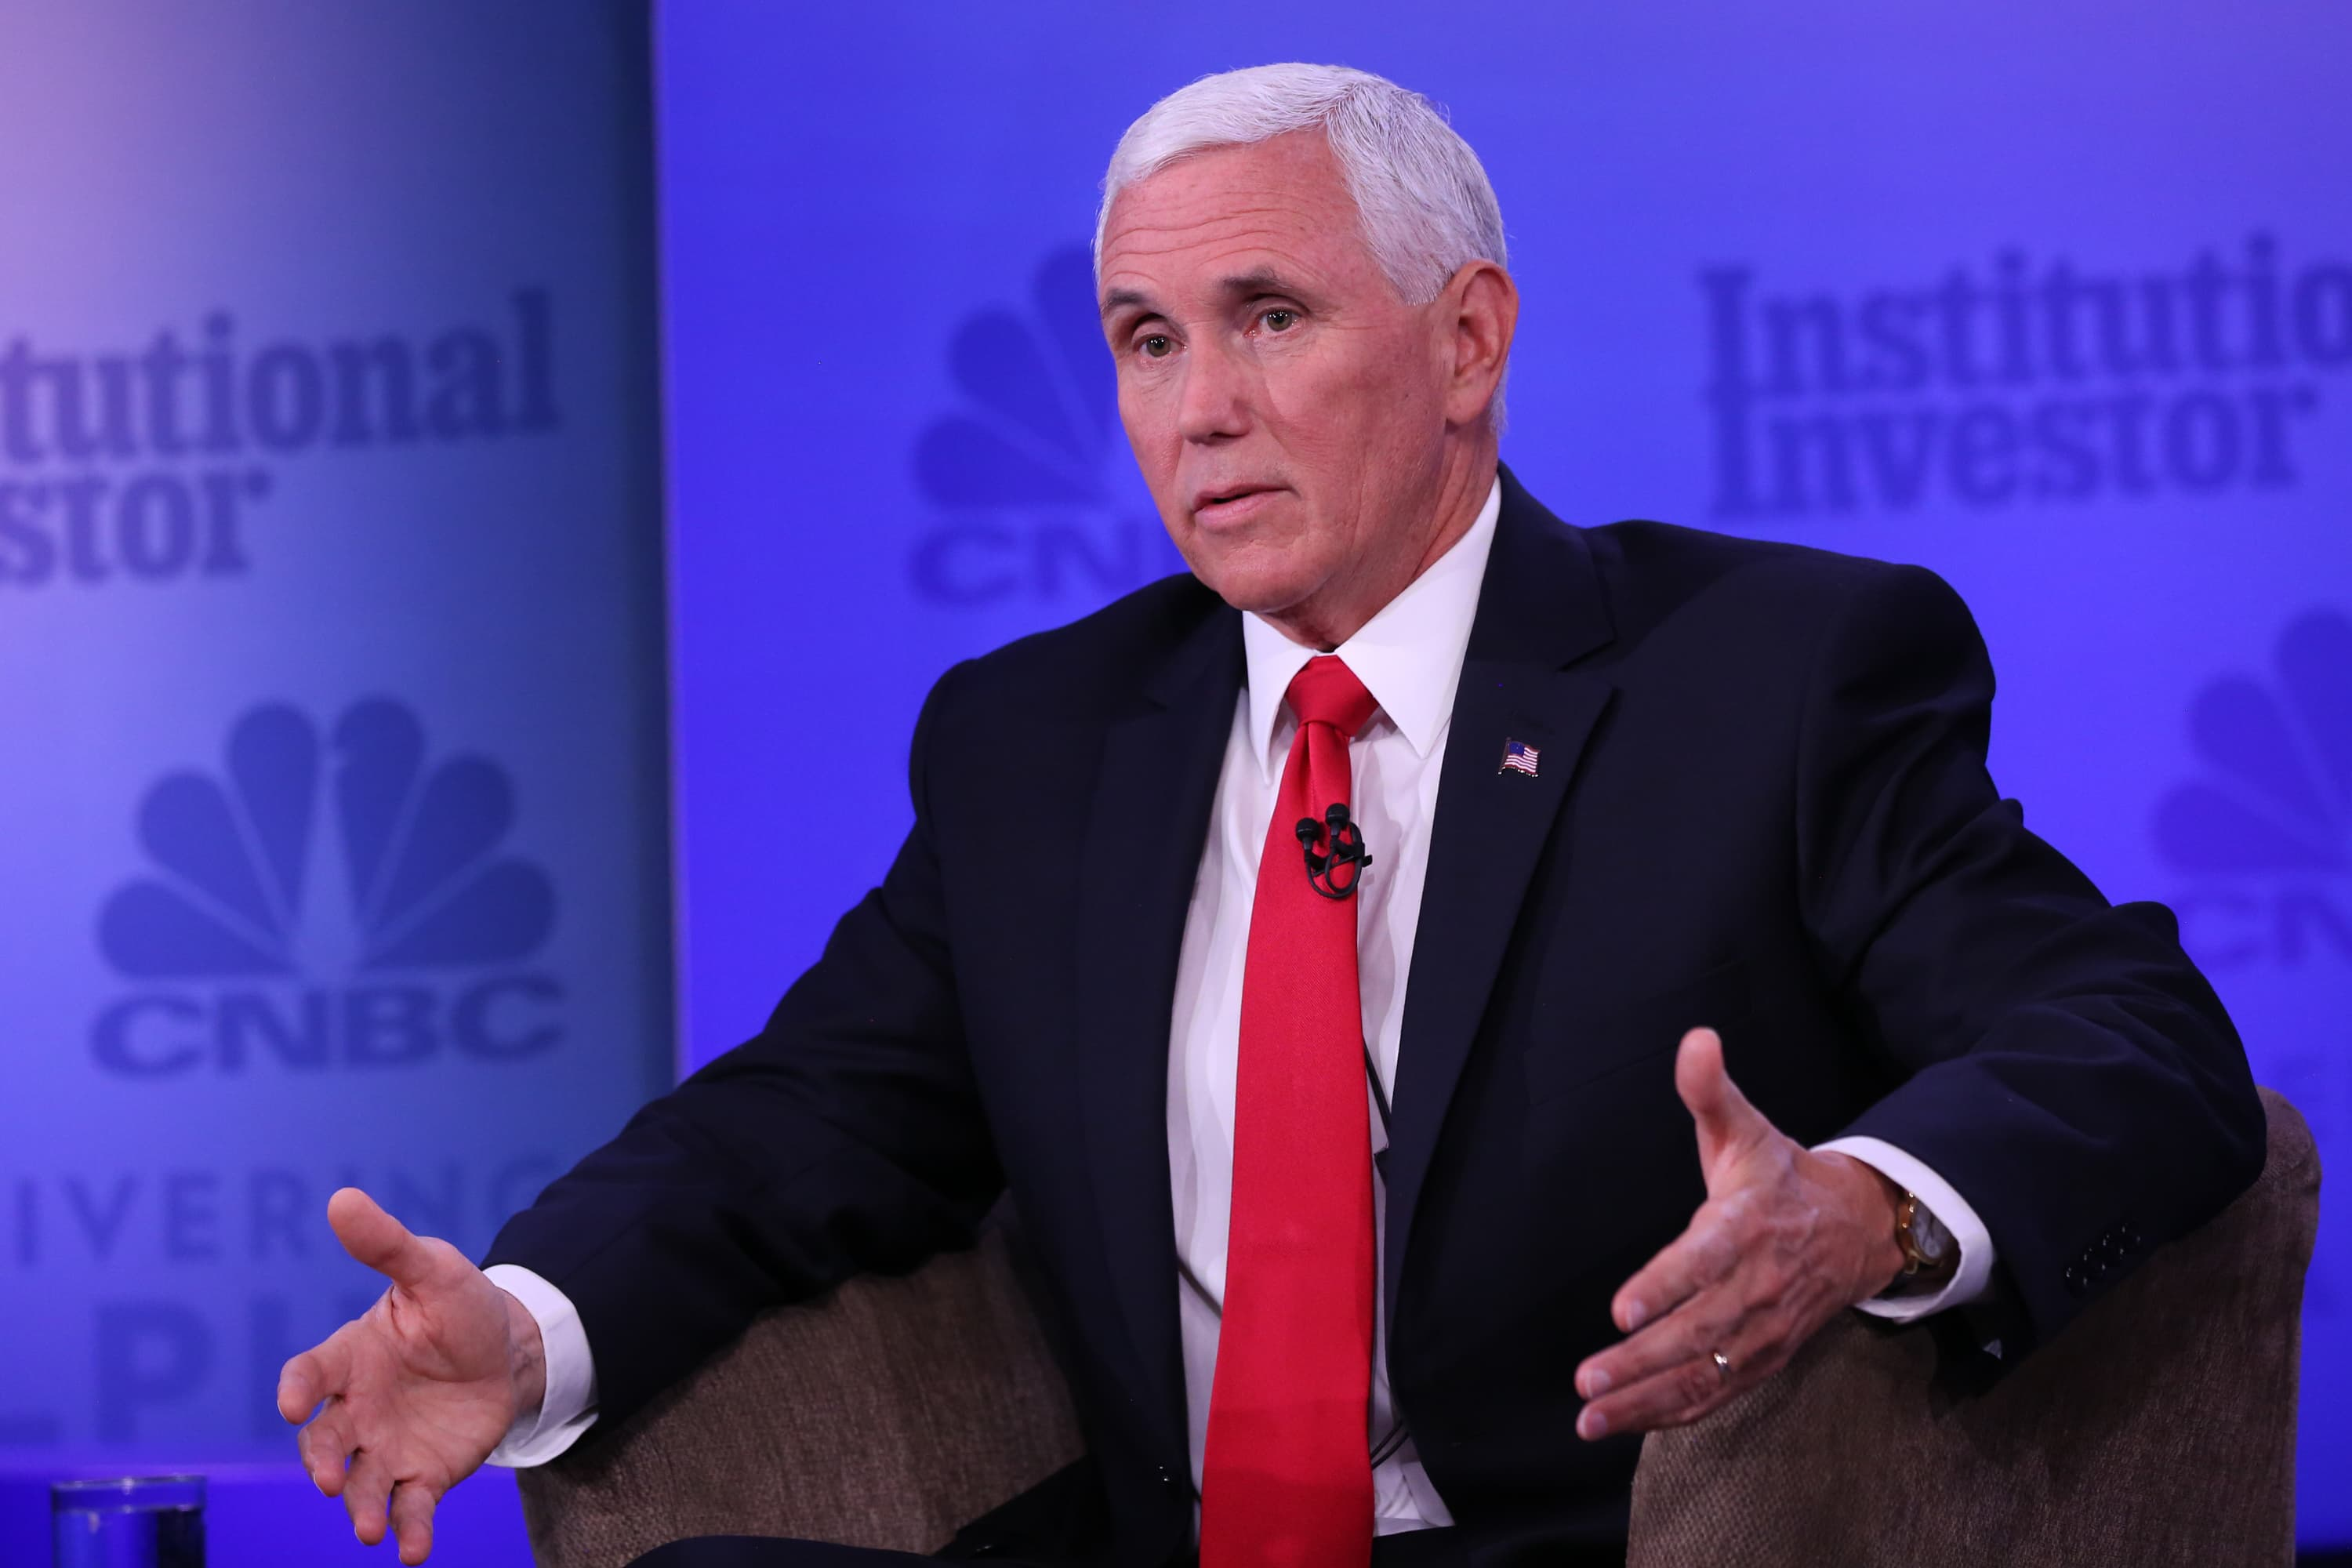 Pence says other countries should 'emulate' US economic policies to catch up